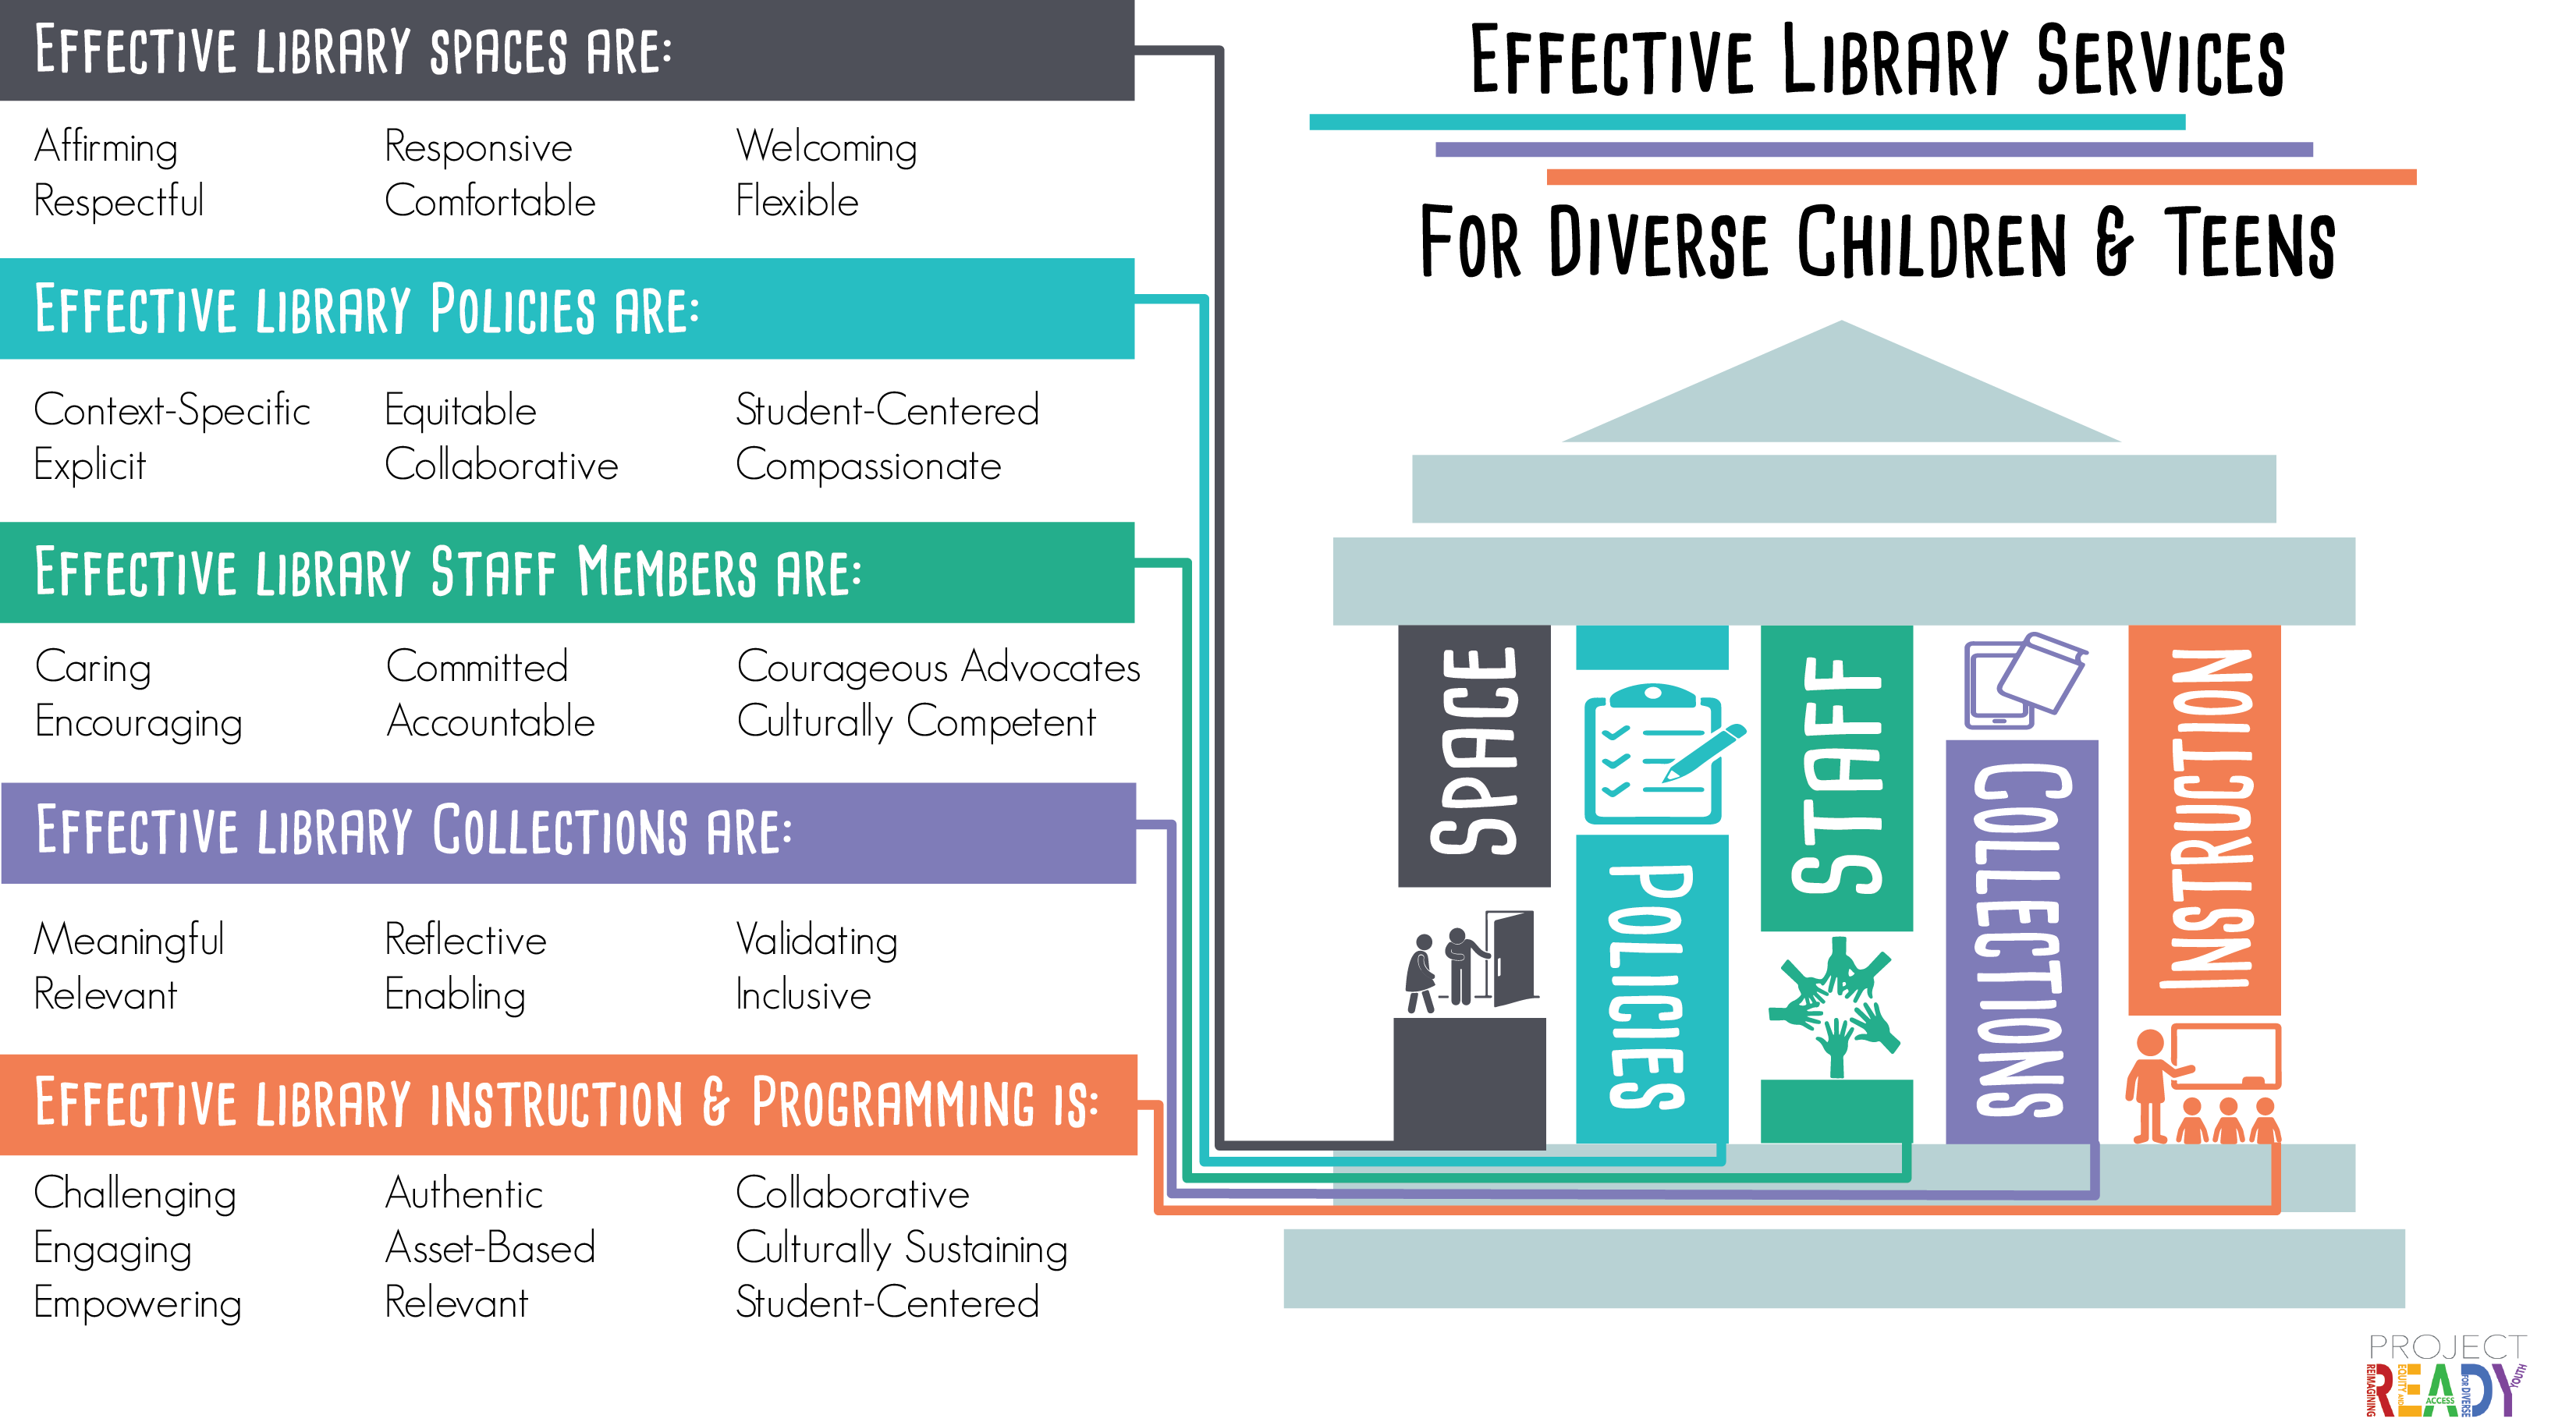 Effective Libraries for Diverse Children and Teens (Characteristics of effective library services are listed below.)